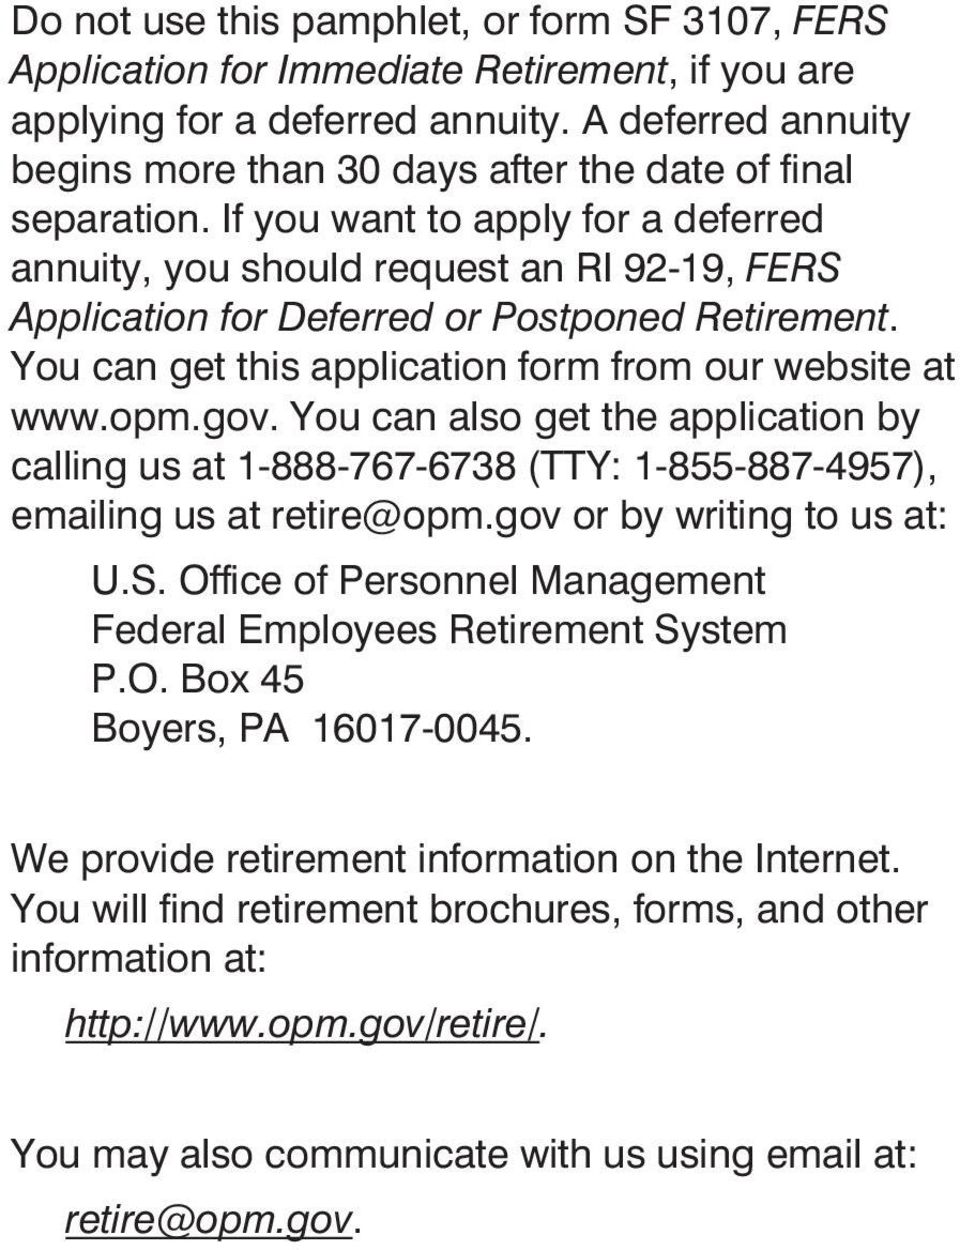 If you want to apply for a deferred annuity, you should request an RI 92-19, FERS Application for Deferred or Postponed Retirement. You can get this application form from our website at www.opm.gov.